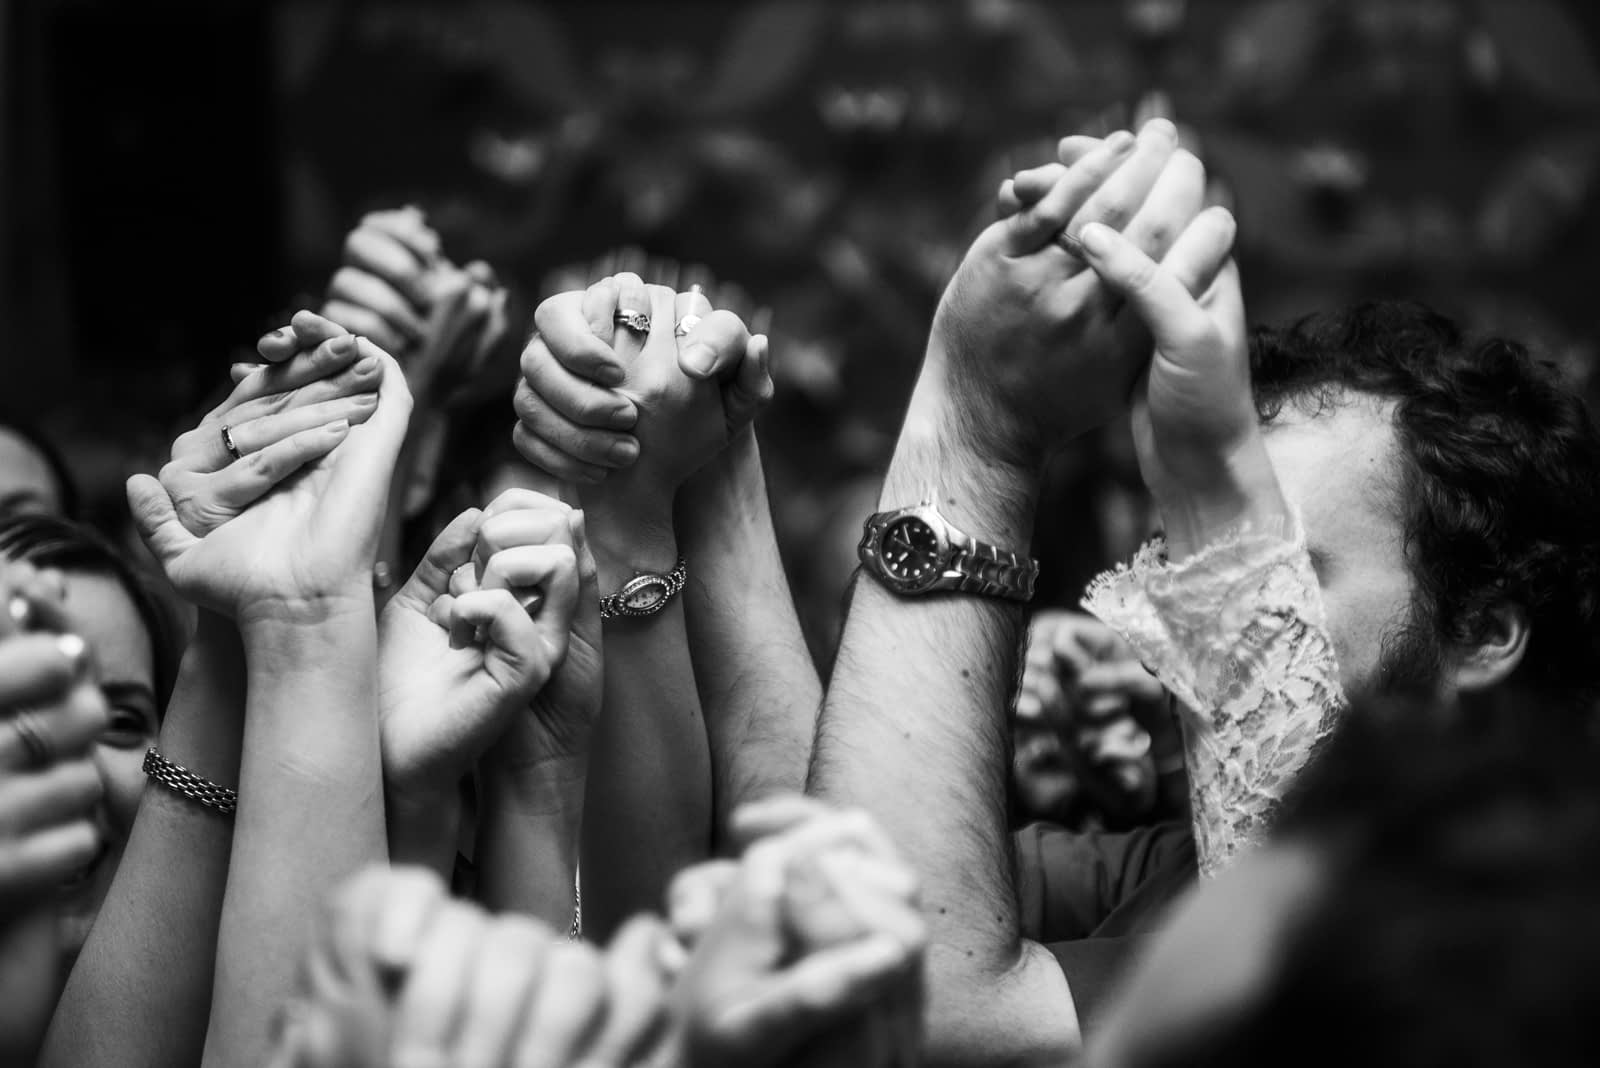 Hands in the air as wedding guests dance together